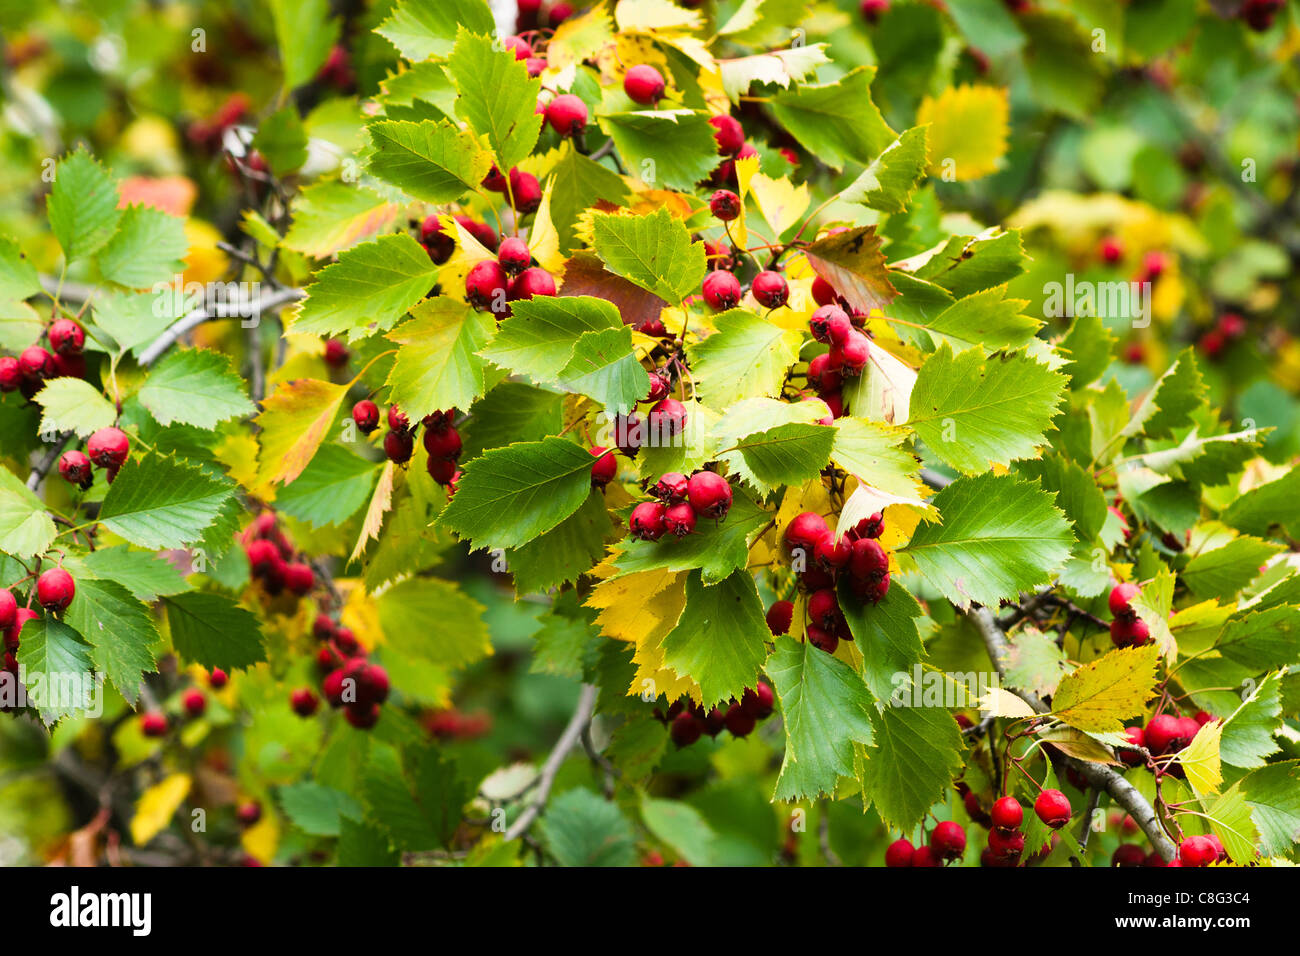 A hawthorn tree with a crop of haw berries in the early October - Stock Image